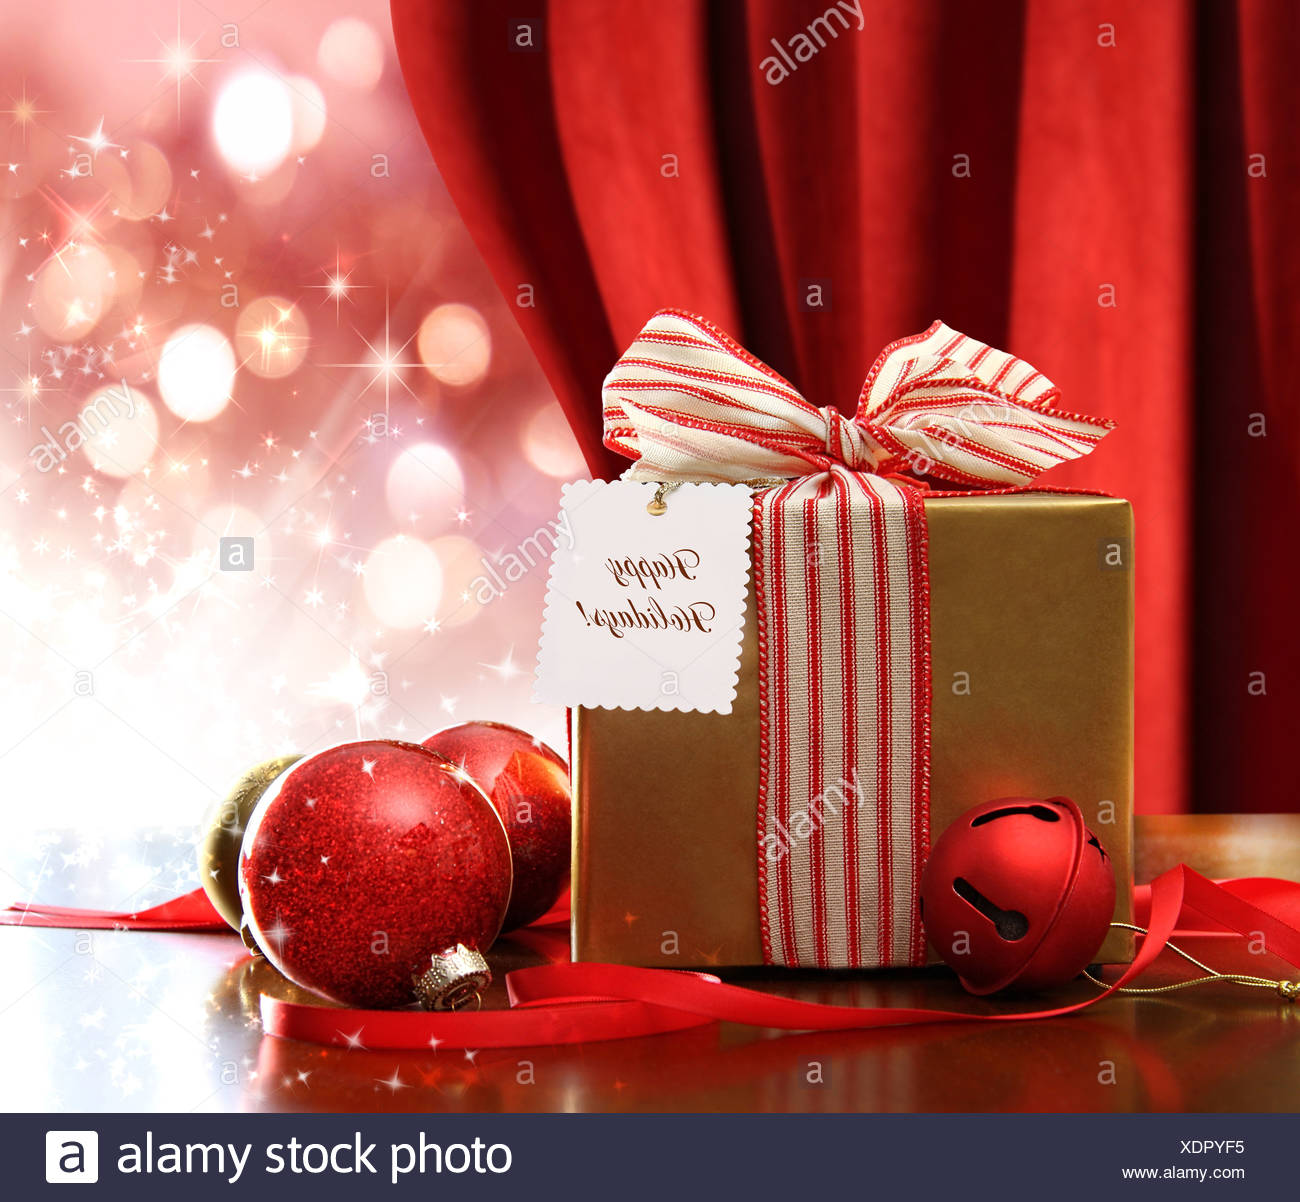 Gold Christmas gift box and ornaments with sparkle lights in background - Stock Image